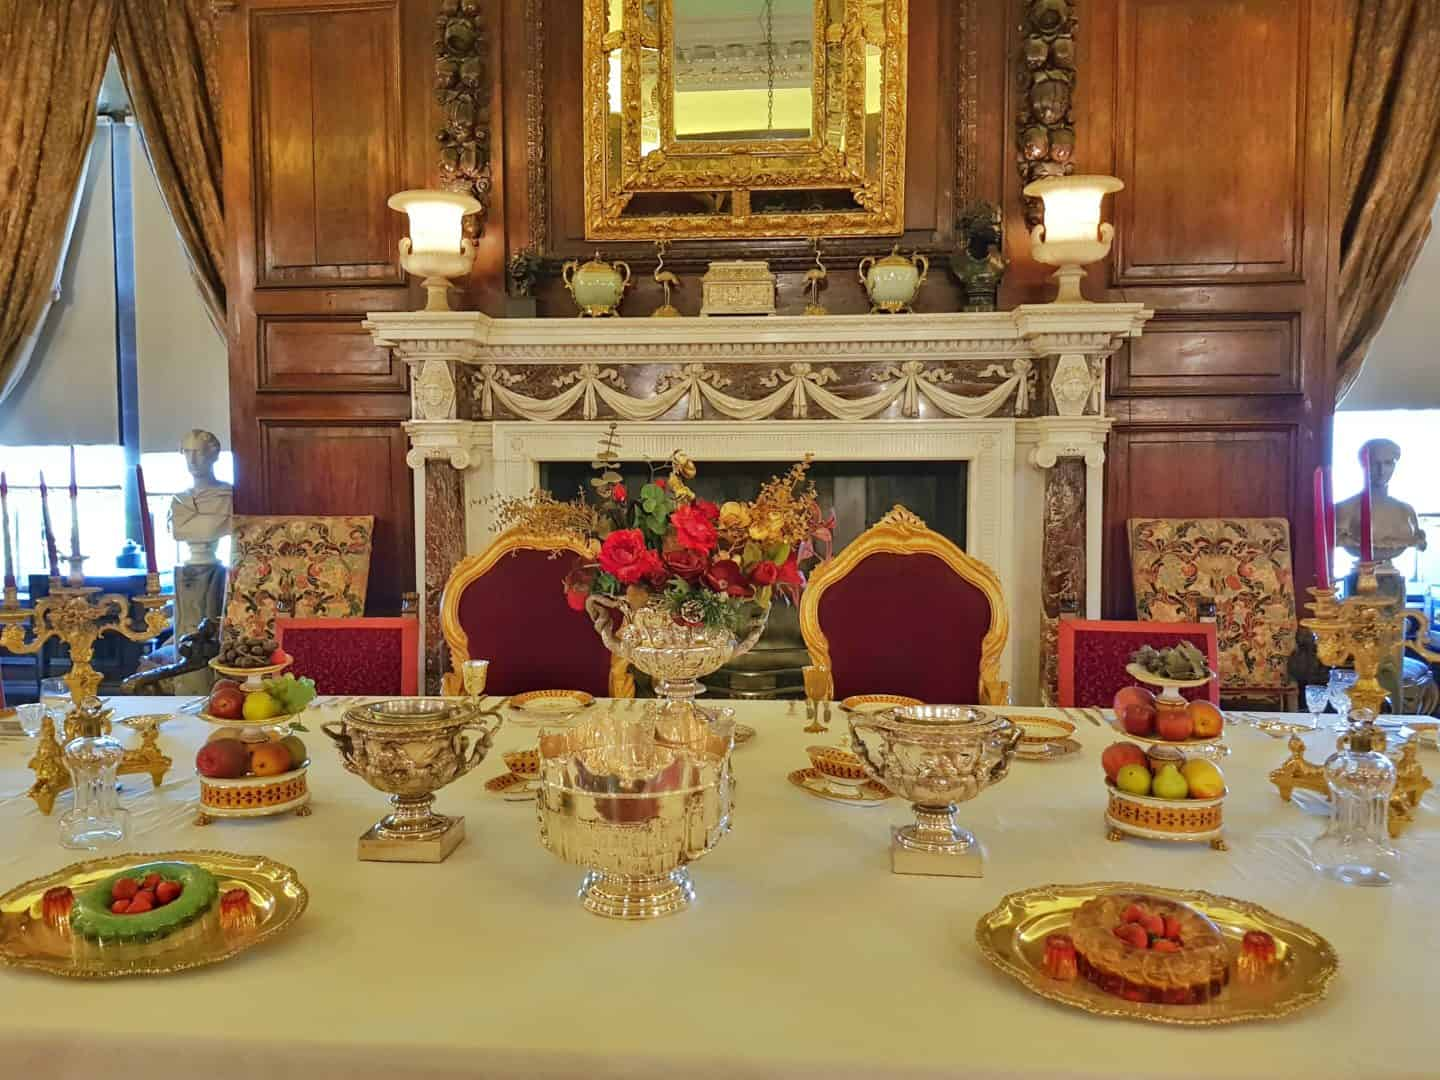 State dining room at Warwick Castle